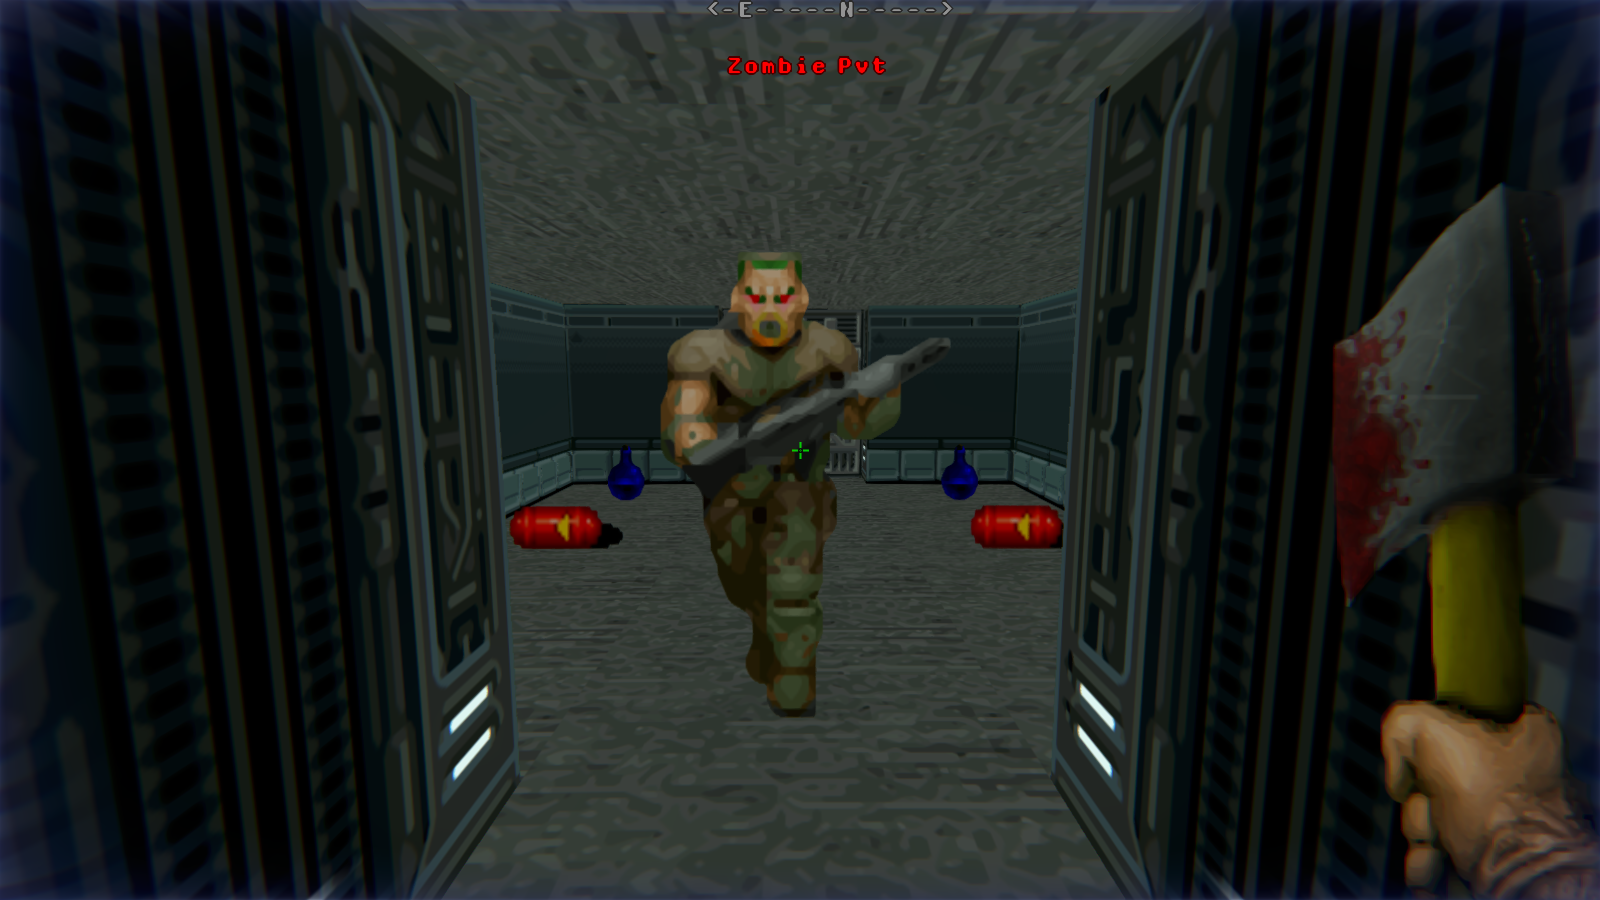 DRRP Doom RPG Remake Project INTRO Entrance Zombie Pvt Axe Screenshot